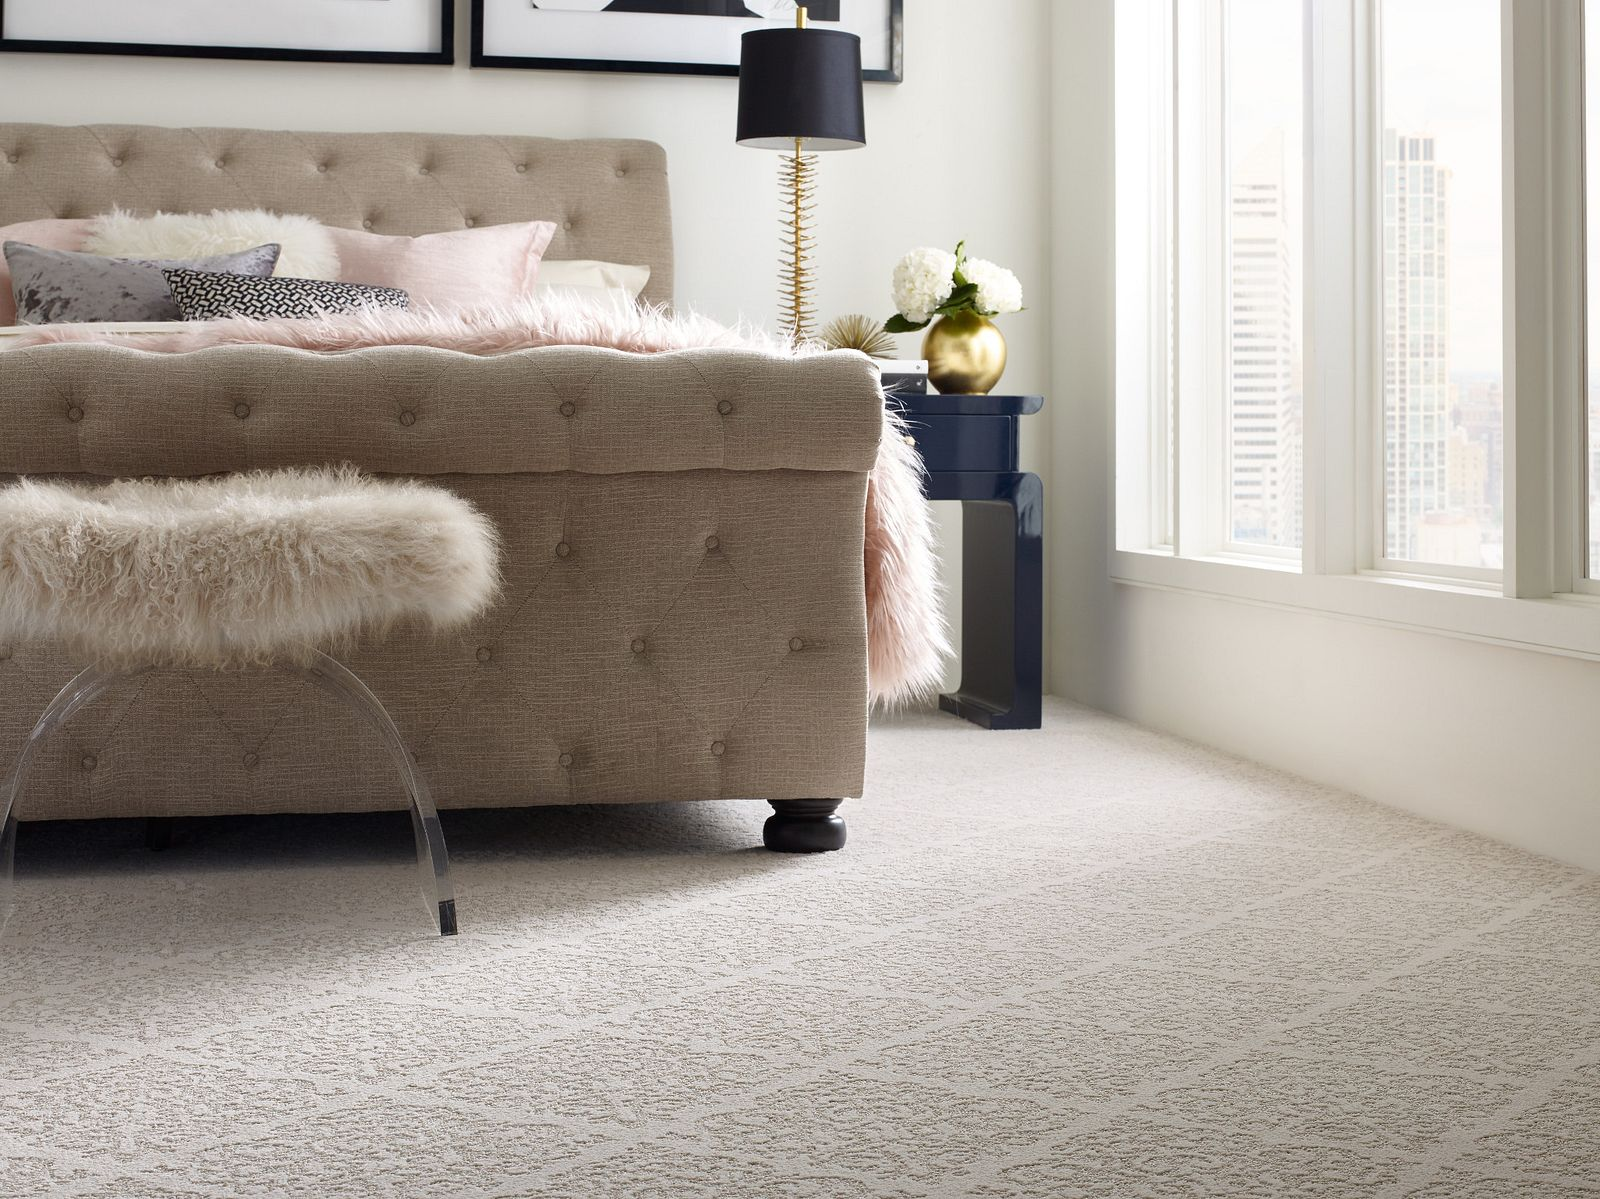 CCS73 00800 carpet Room Scene